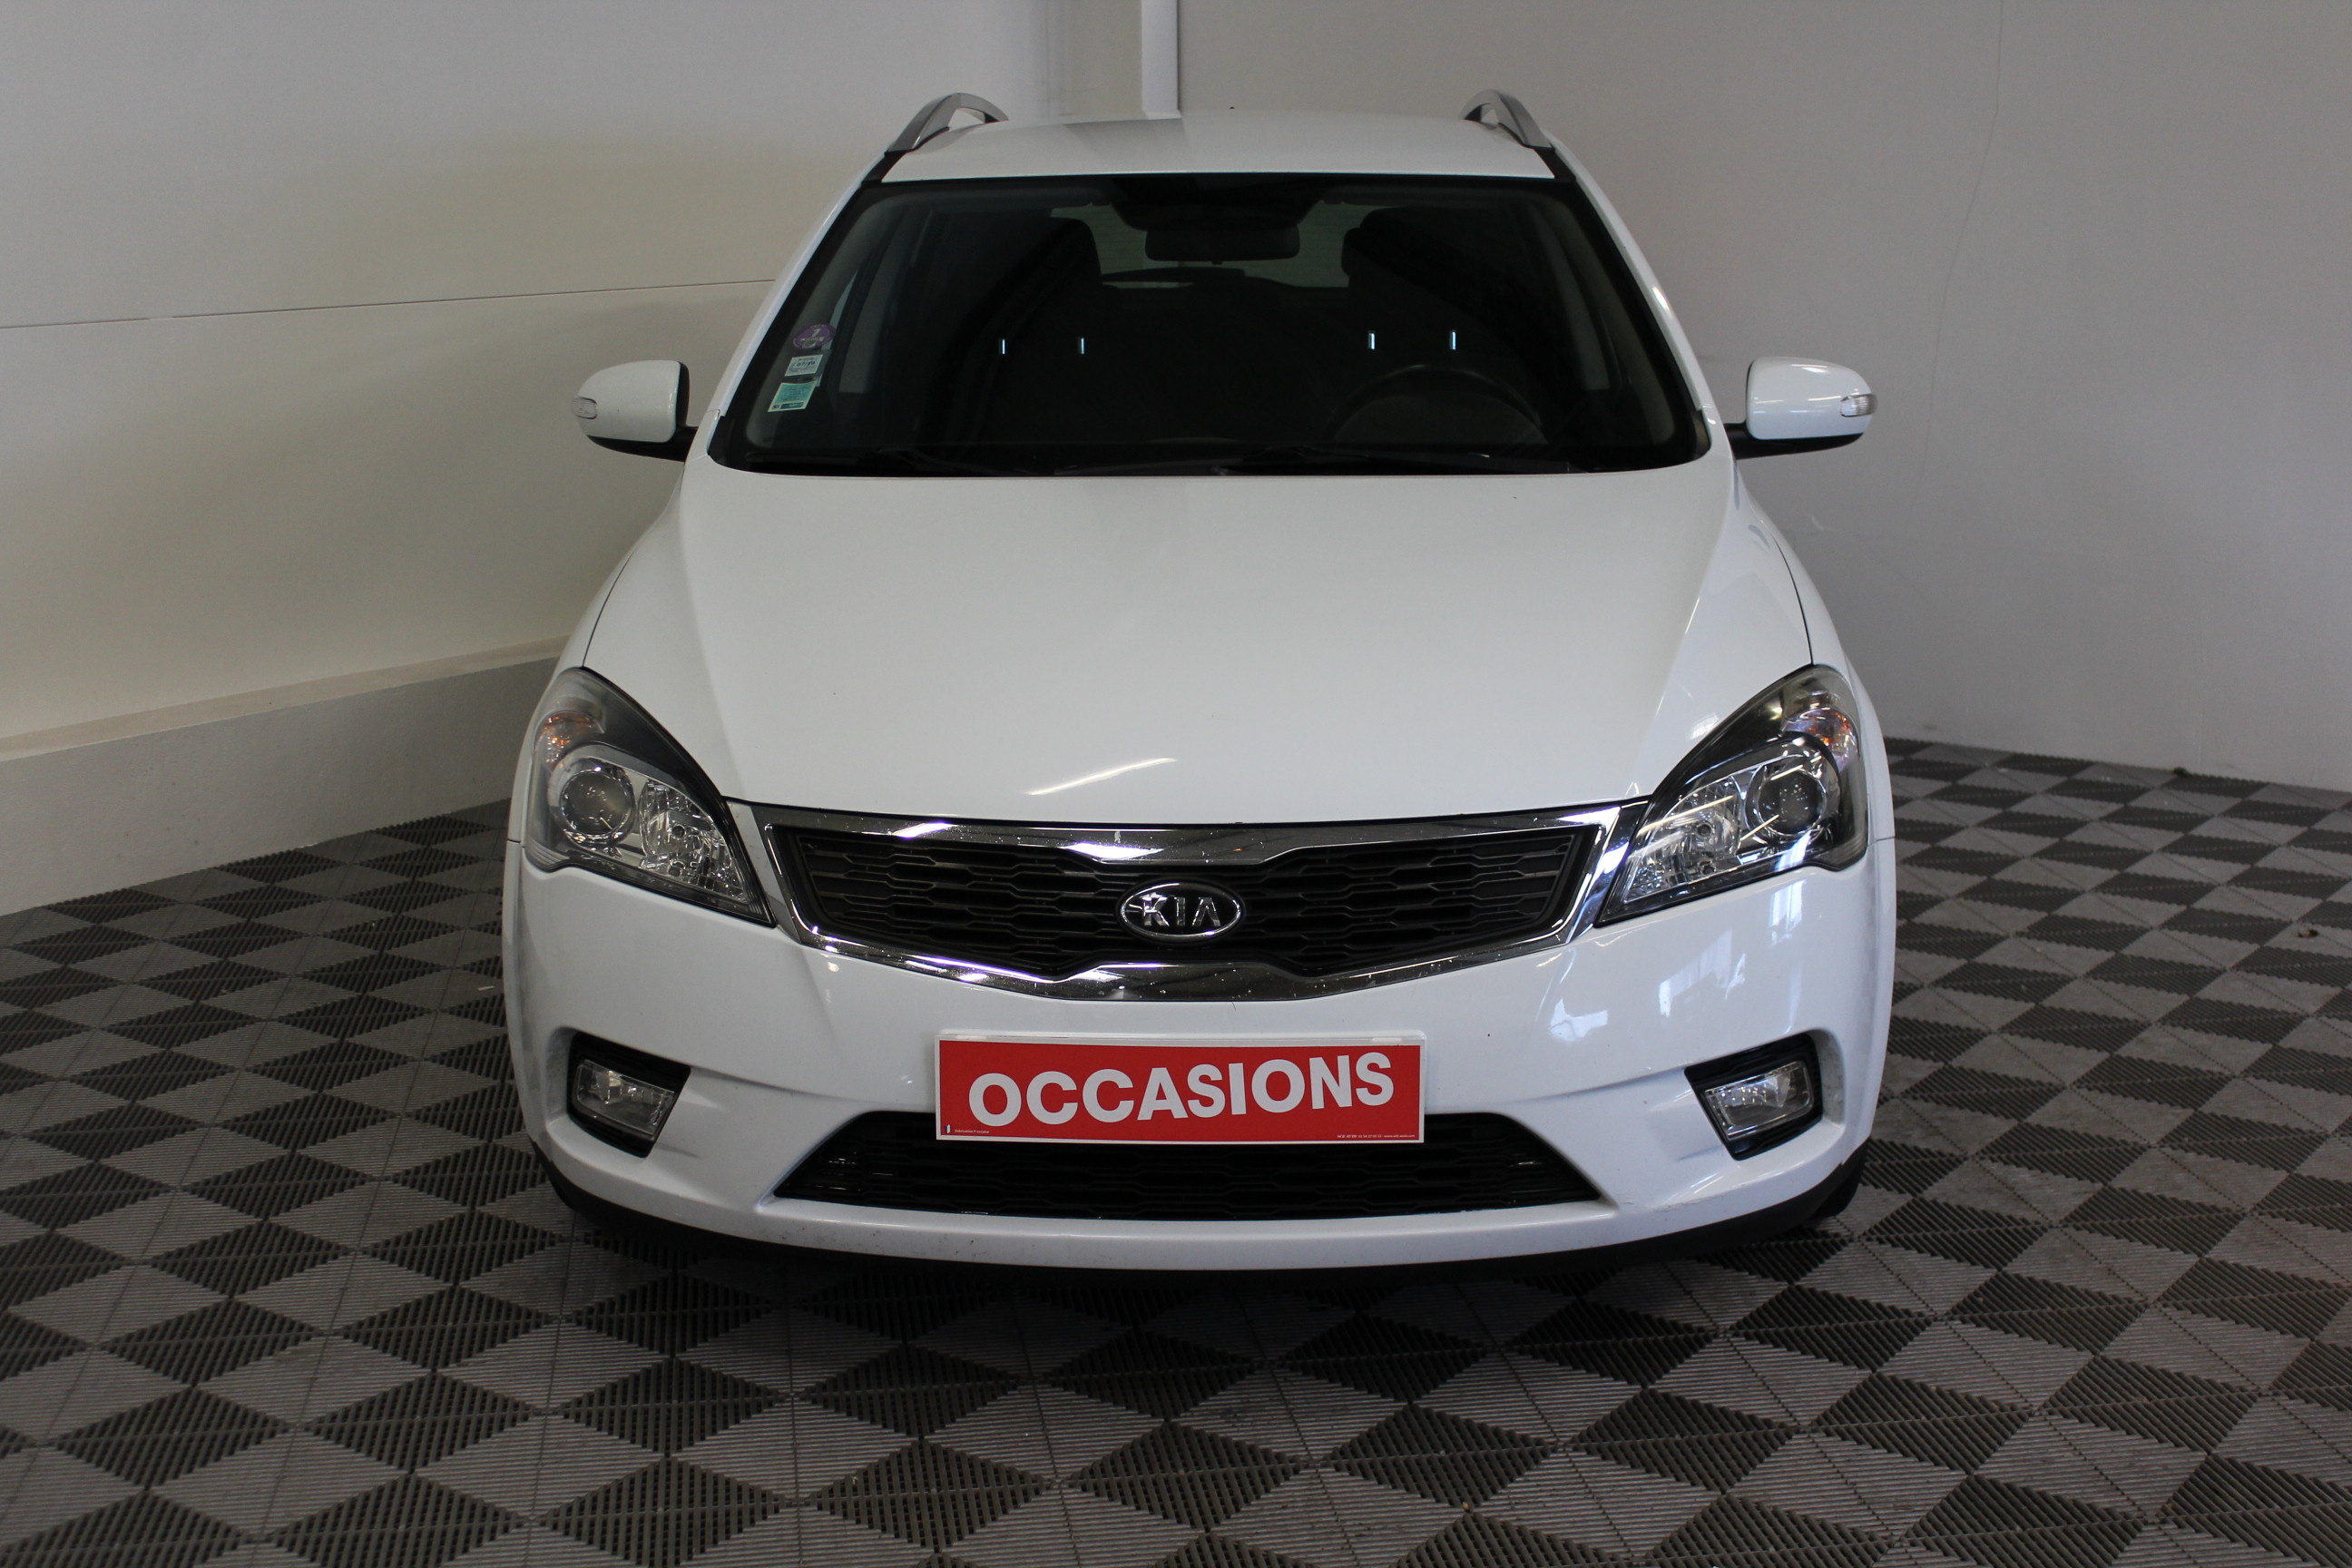 KIA CEE'D SW 2011 à 5400 € - Photo n°2